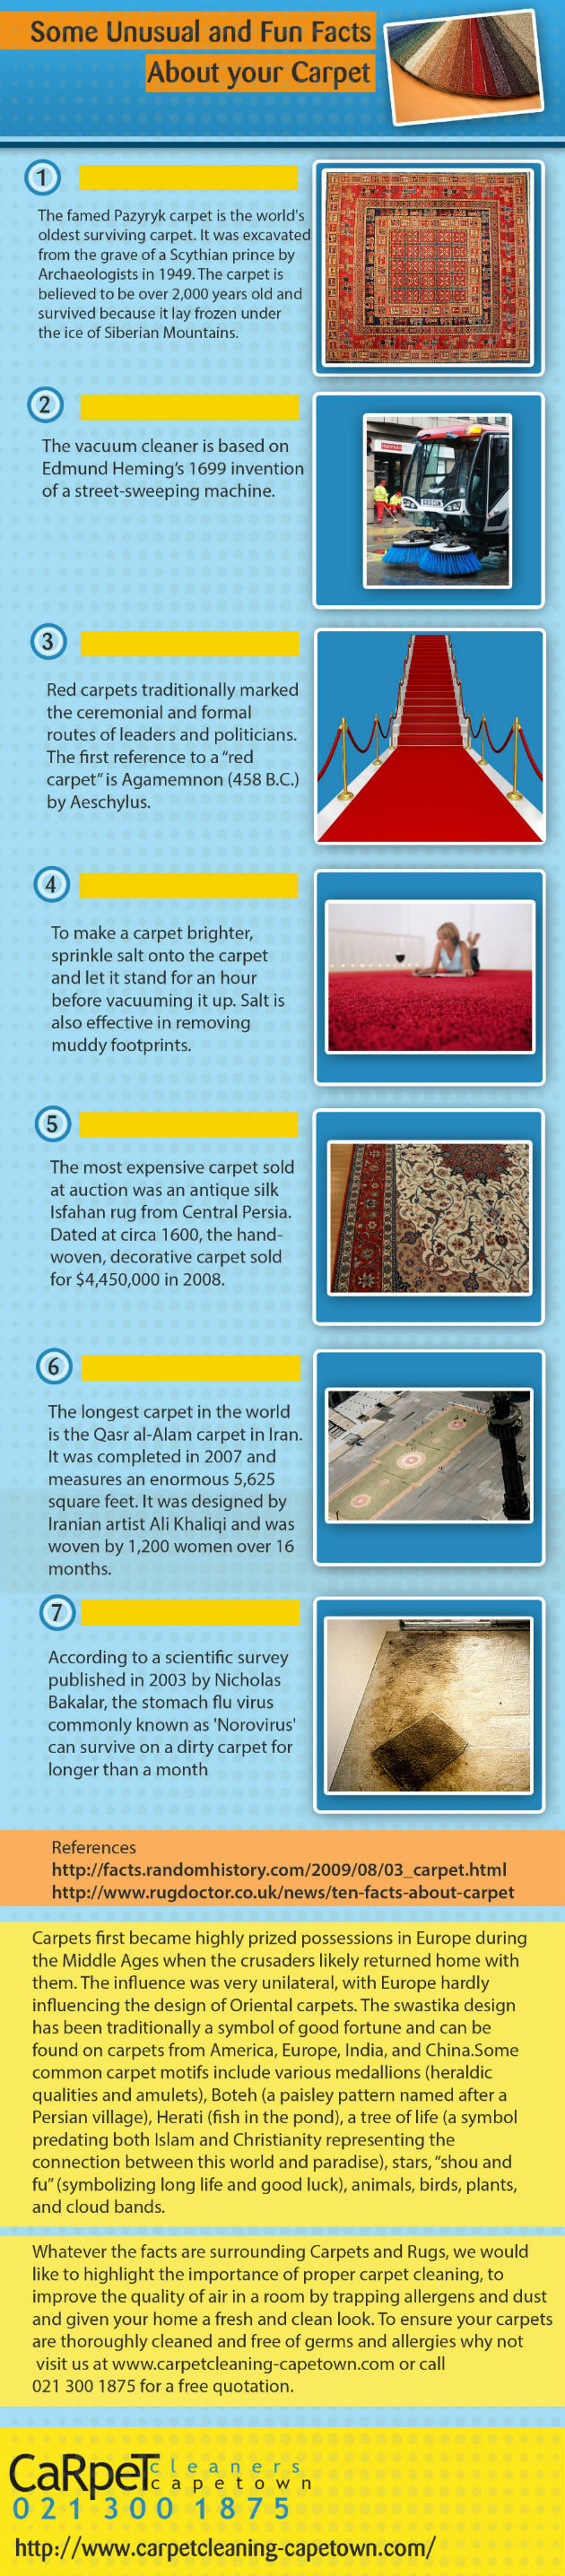 Carpet Cleaning Cape Town Infographic